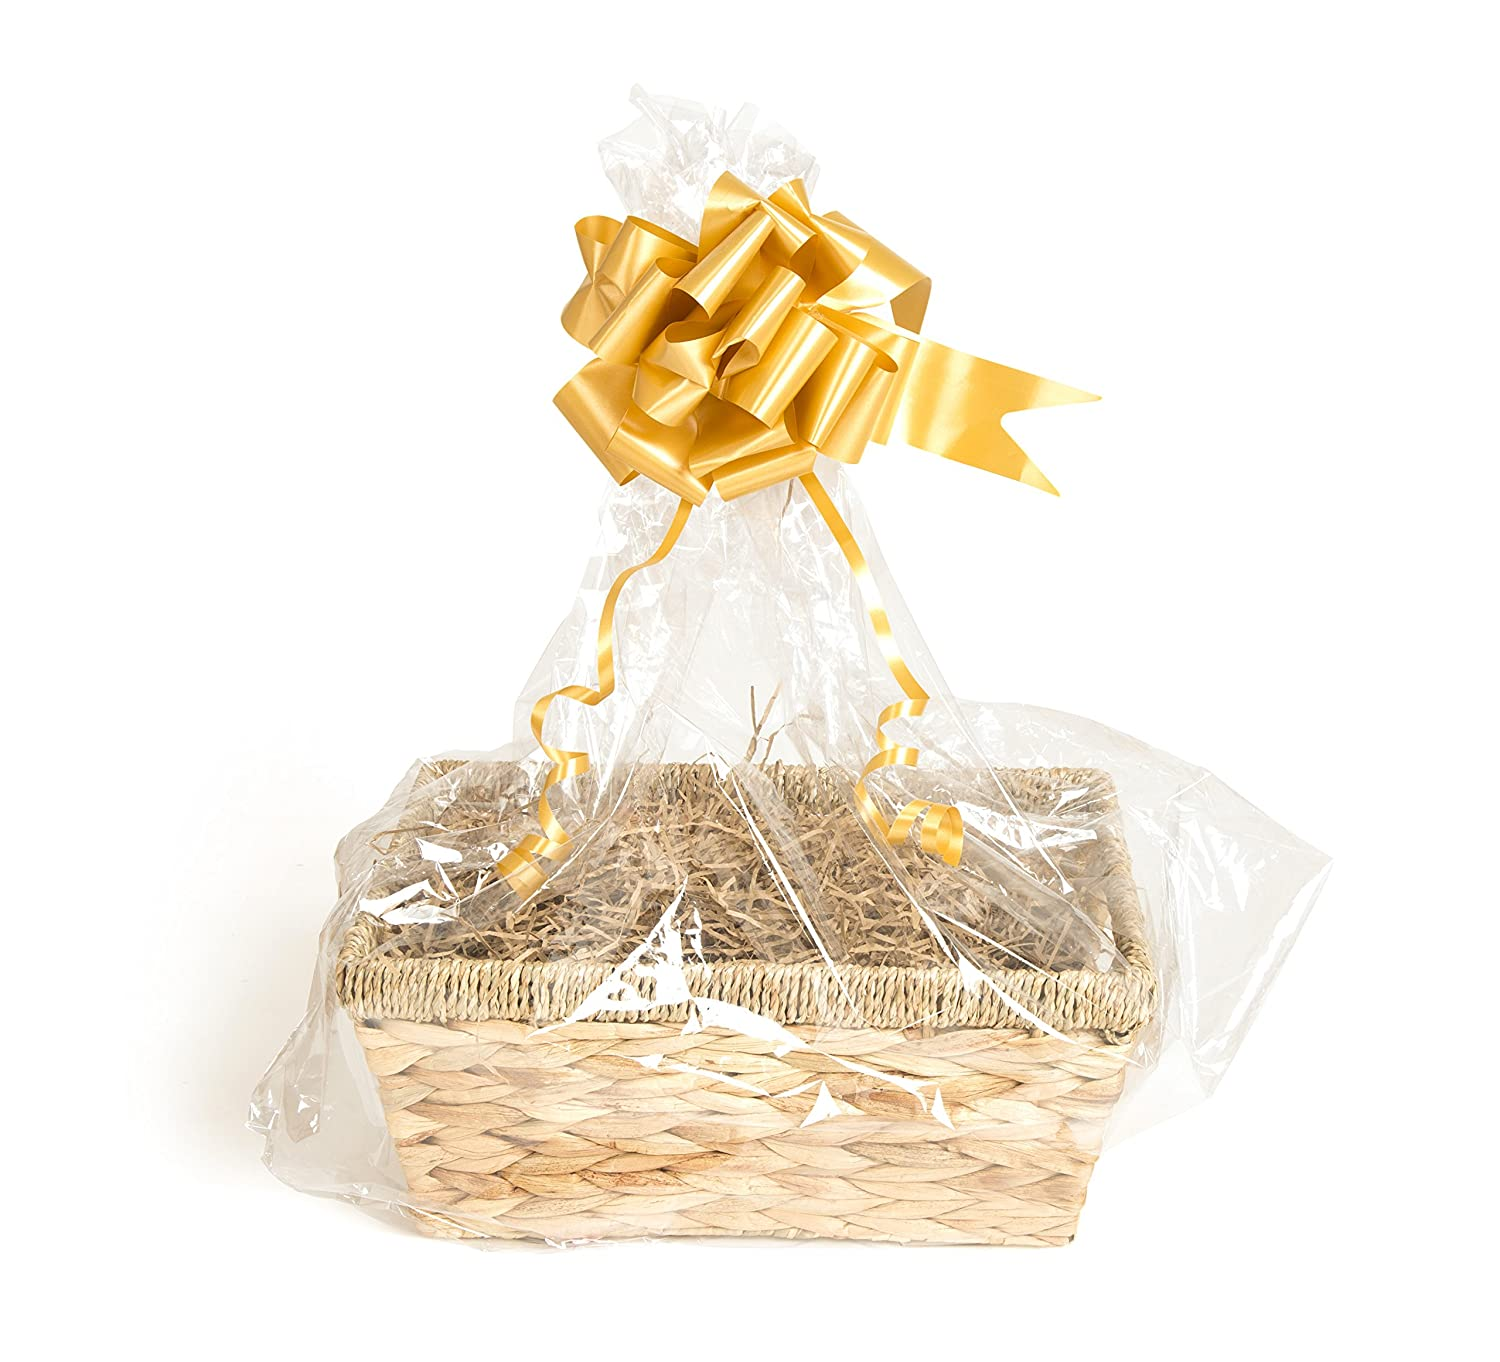 Your Gift Basket - Natural Straw Basket & DIY Hamper Kit with Light Brown Shred, Gold Bow and Clear Gift Wrap